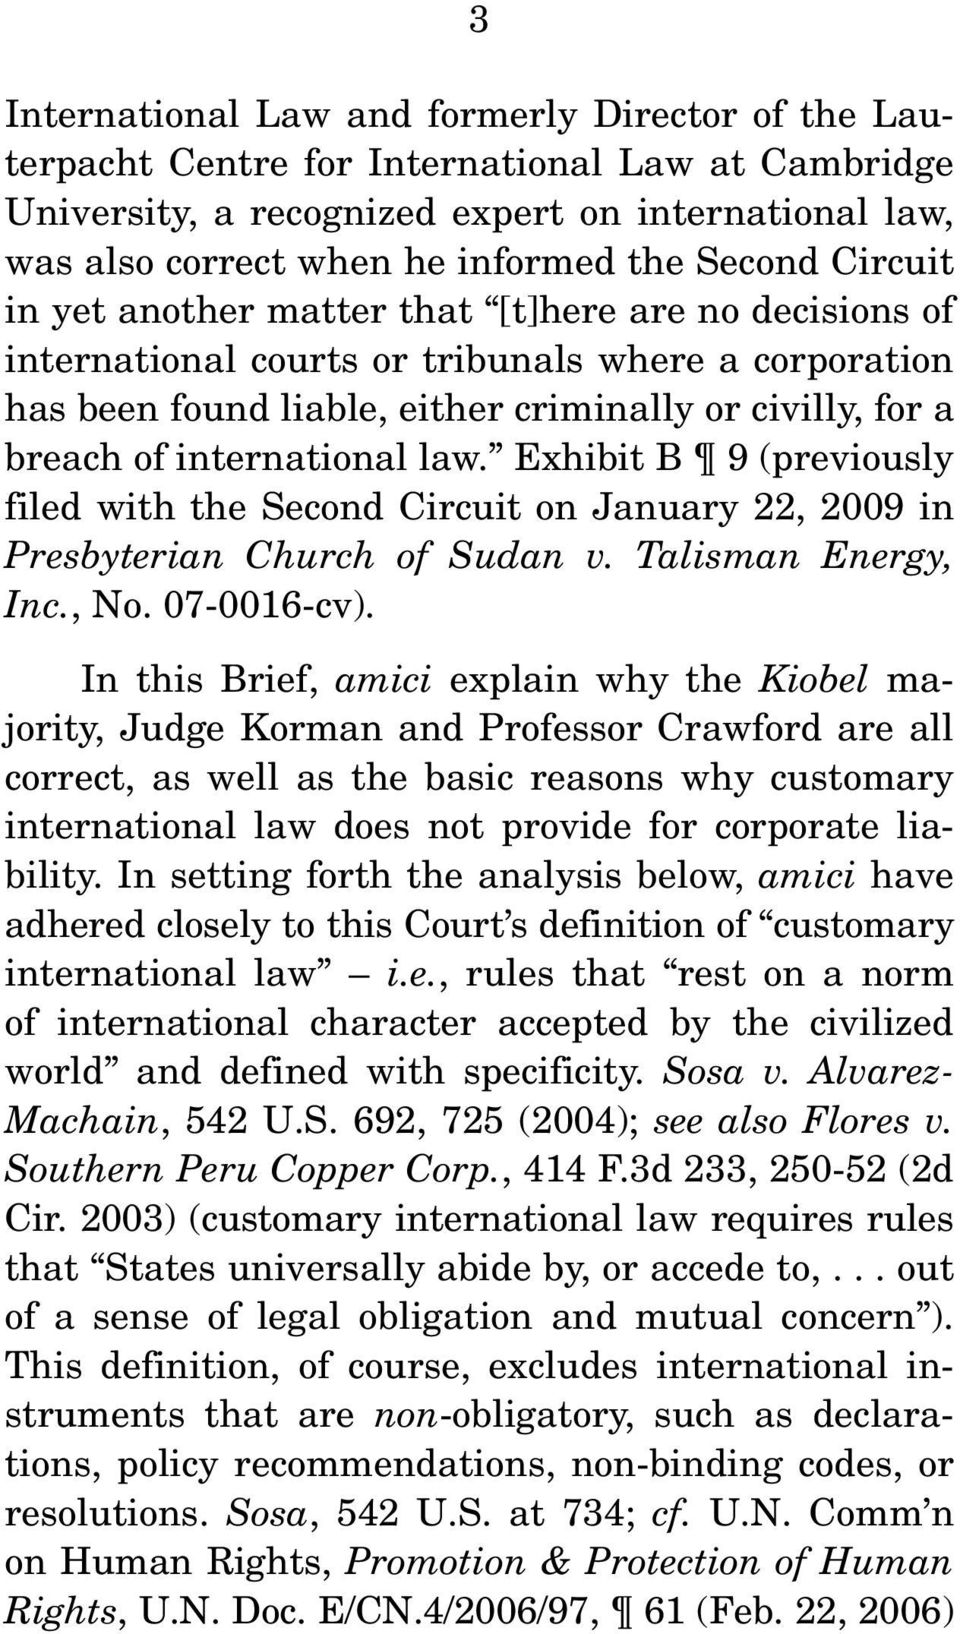 international law. Exhibit B 9 (previously filed with the Second Circuit on January 22, 2009 in Presbyterian Church of Sudan v. Talisman Energy, Inc., No. 07-0016-cv).